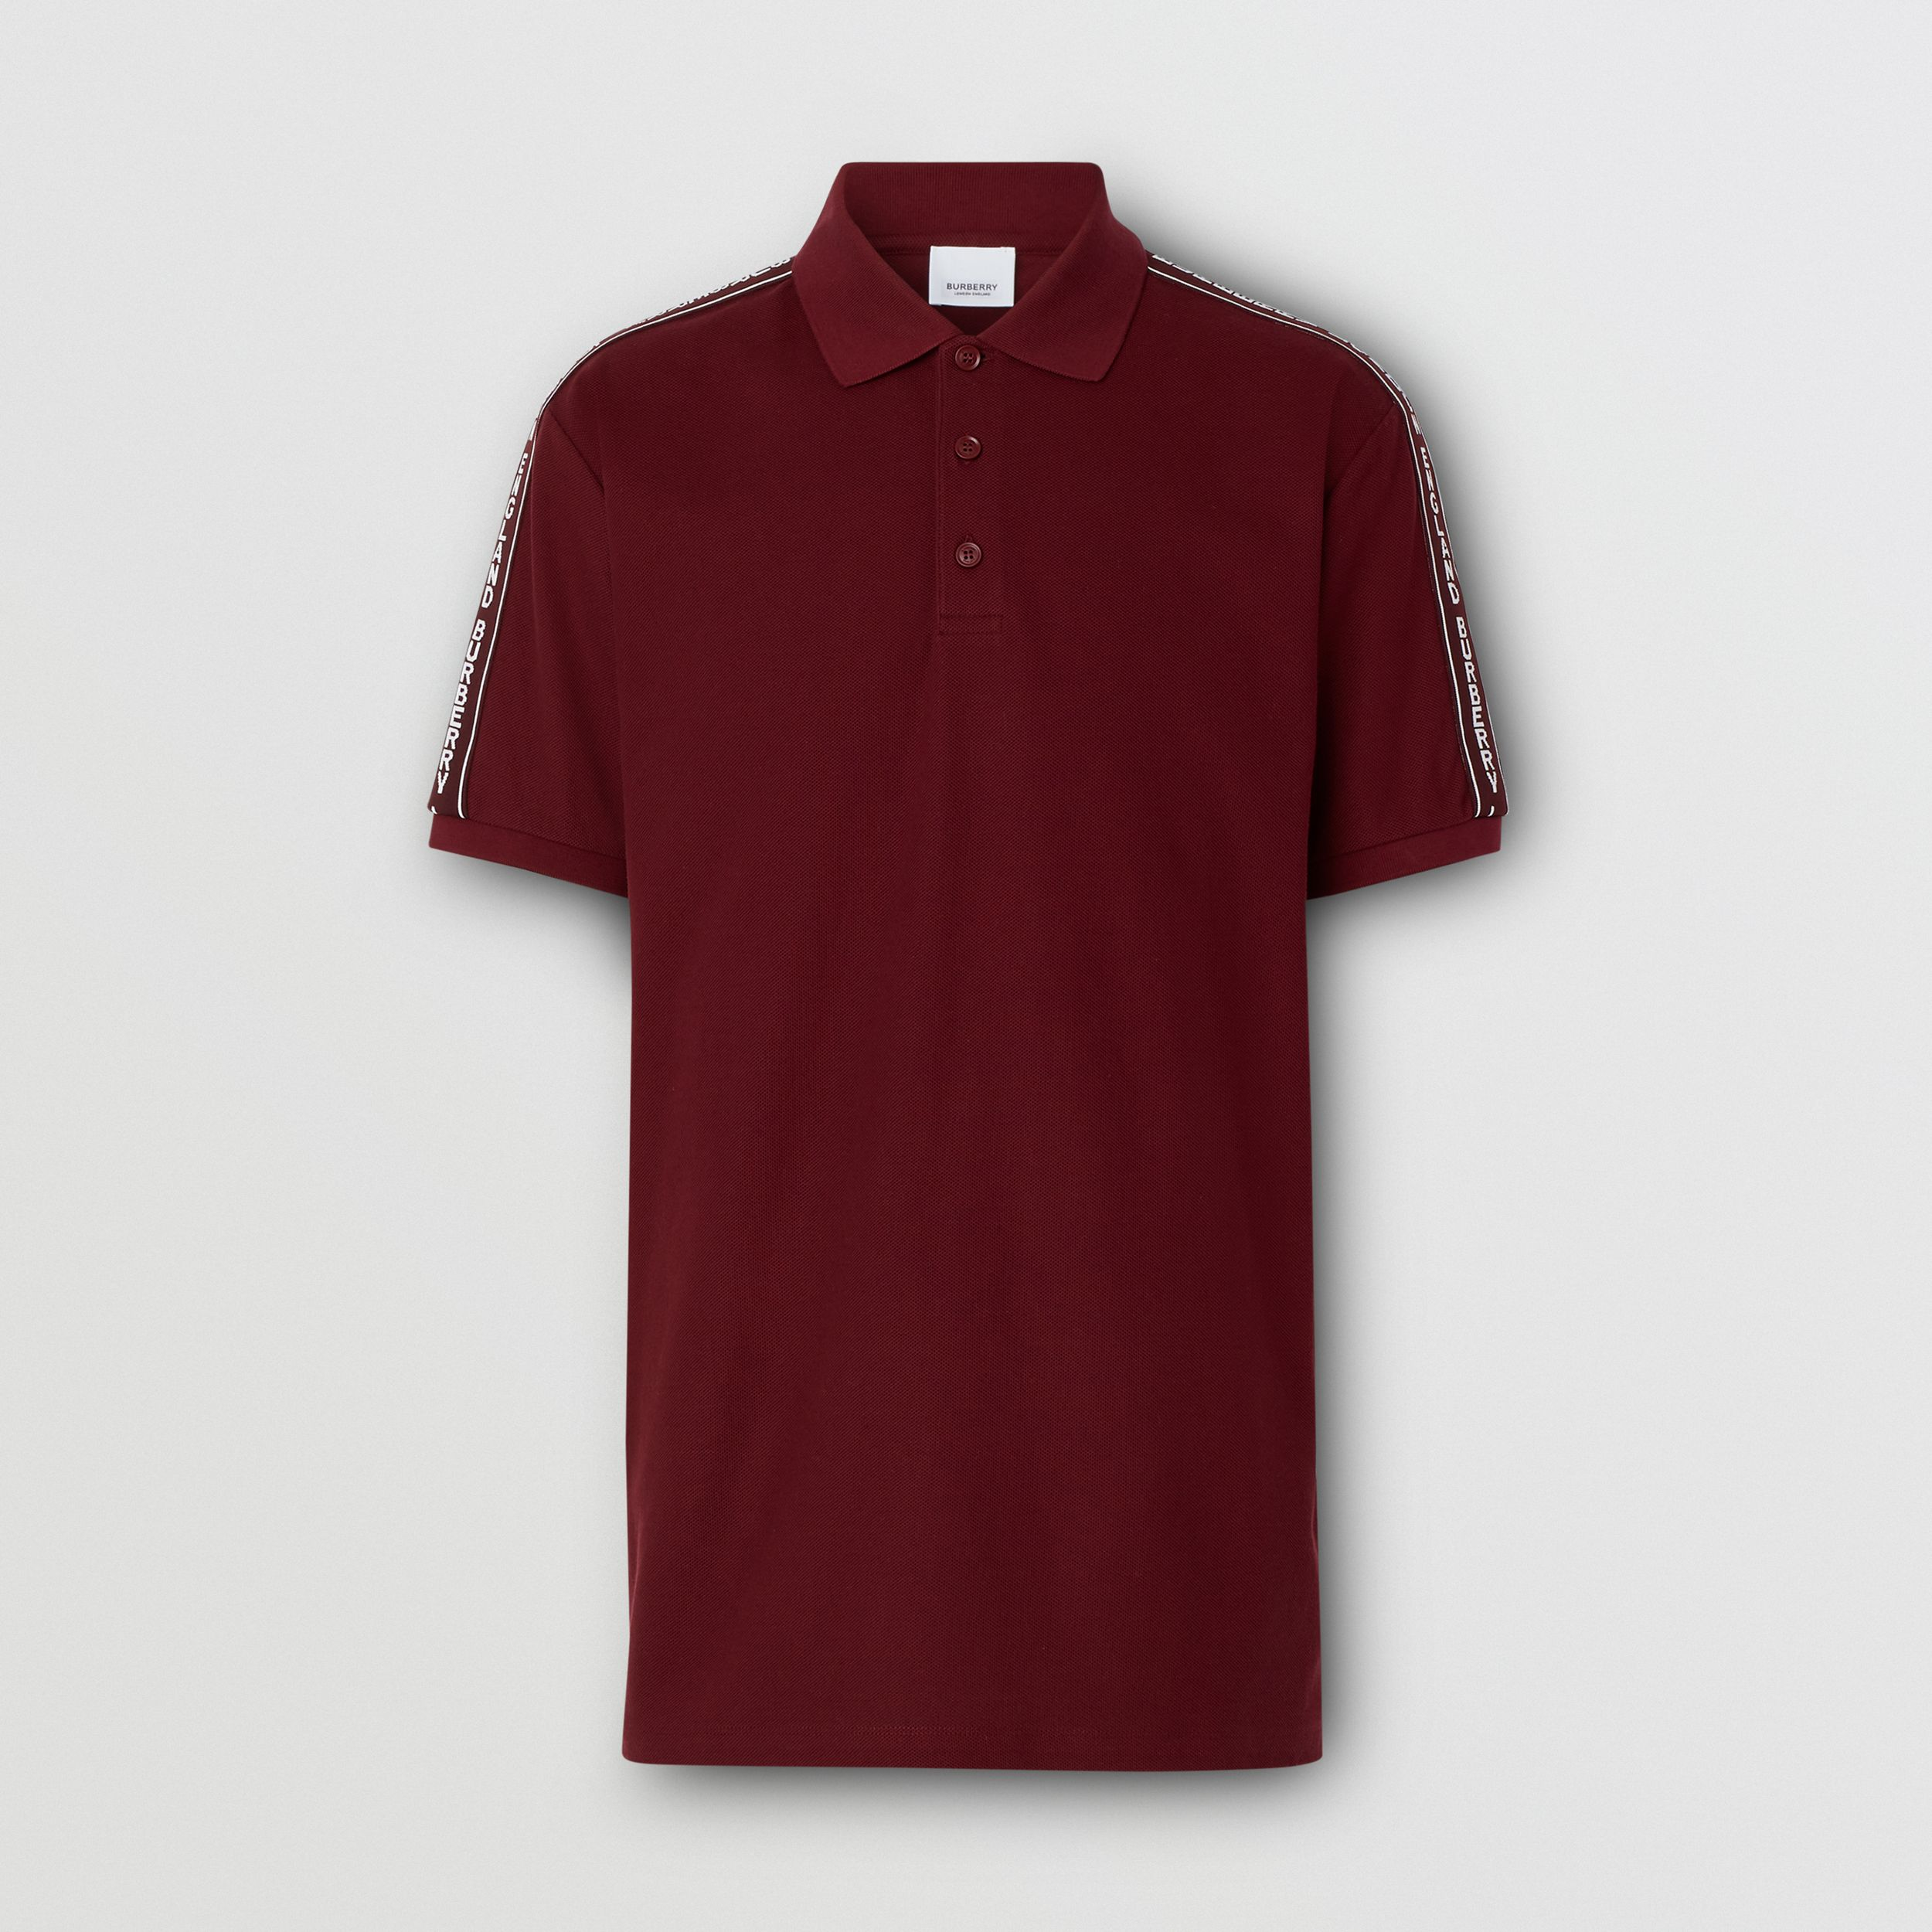 Logo Tape Cotton Piqué Polo Shirt in Deep Merlot - Men | Burberry - 4